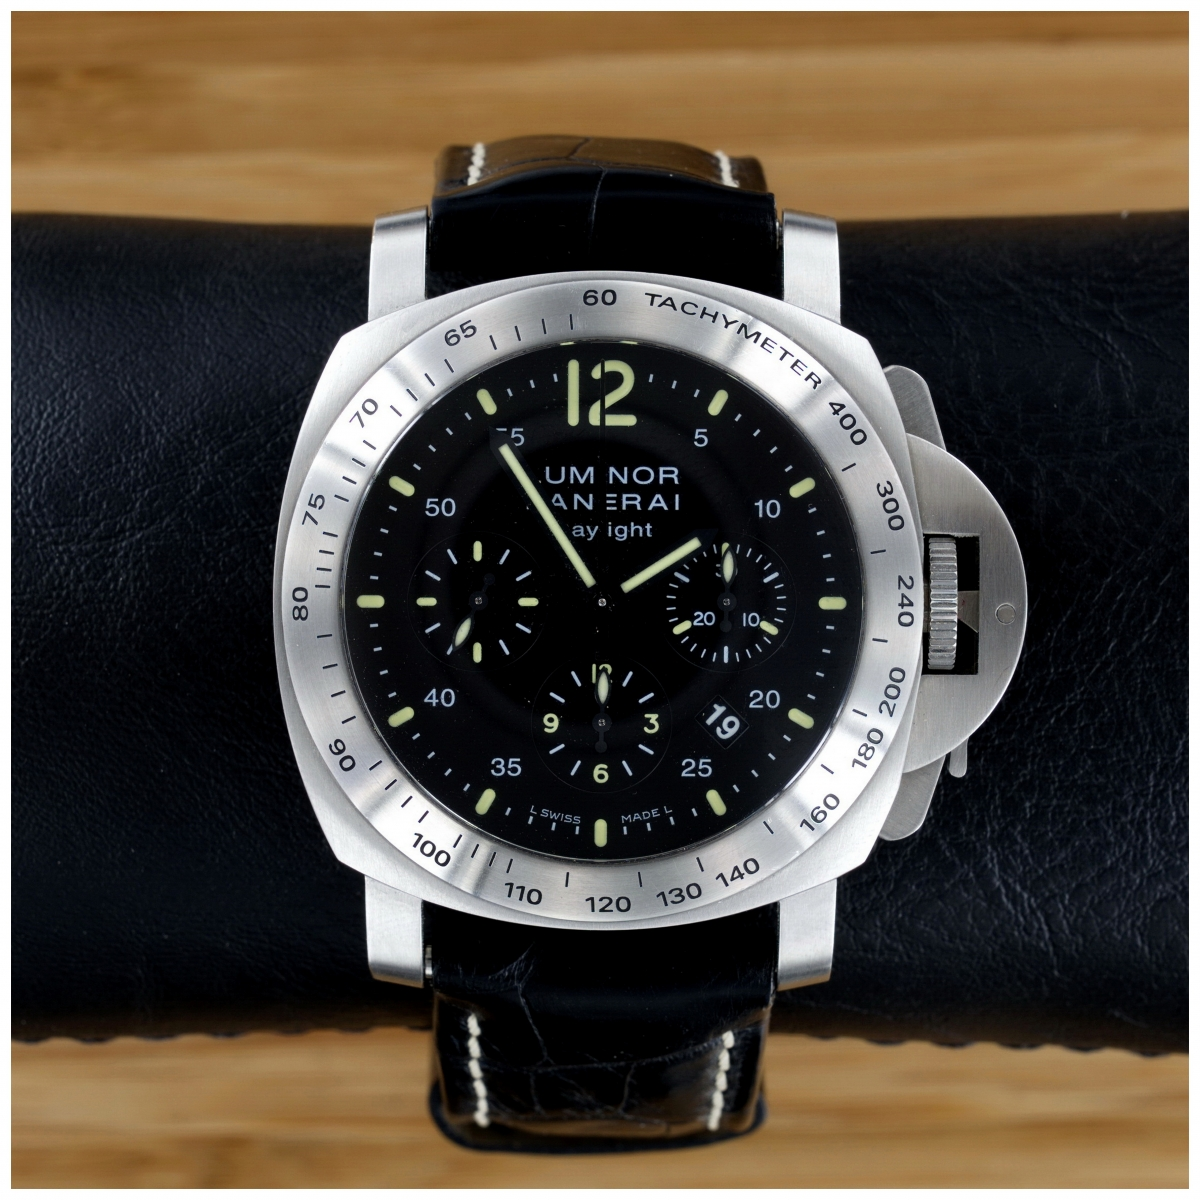 Panerai (Officine Panerai) Luminor PAM250 Daylight Chronograph (PAM00250 PAM 250)